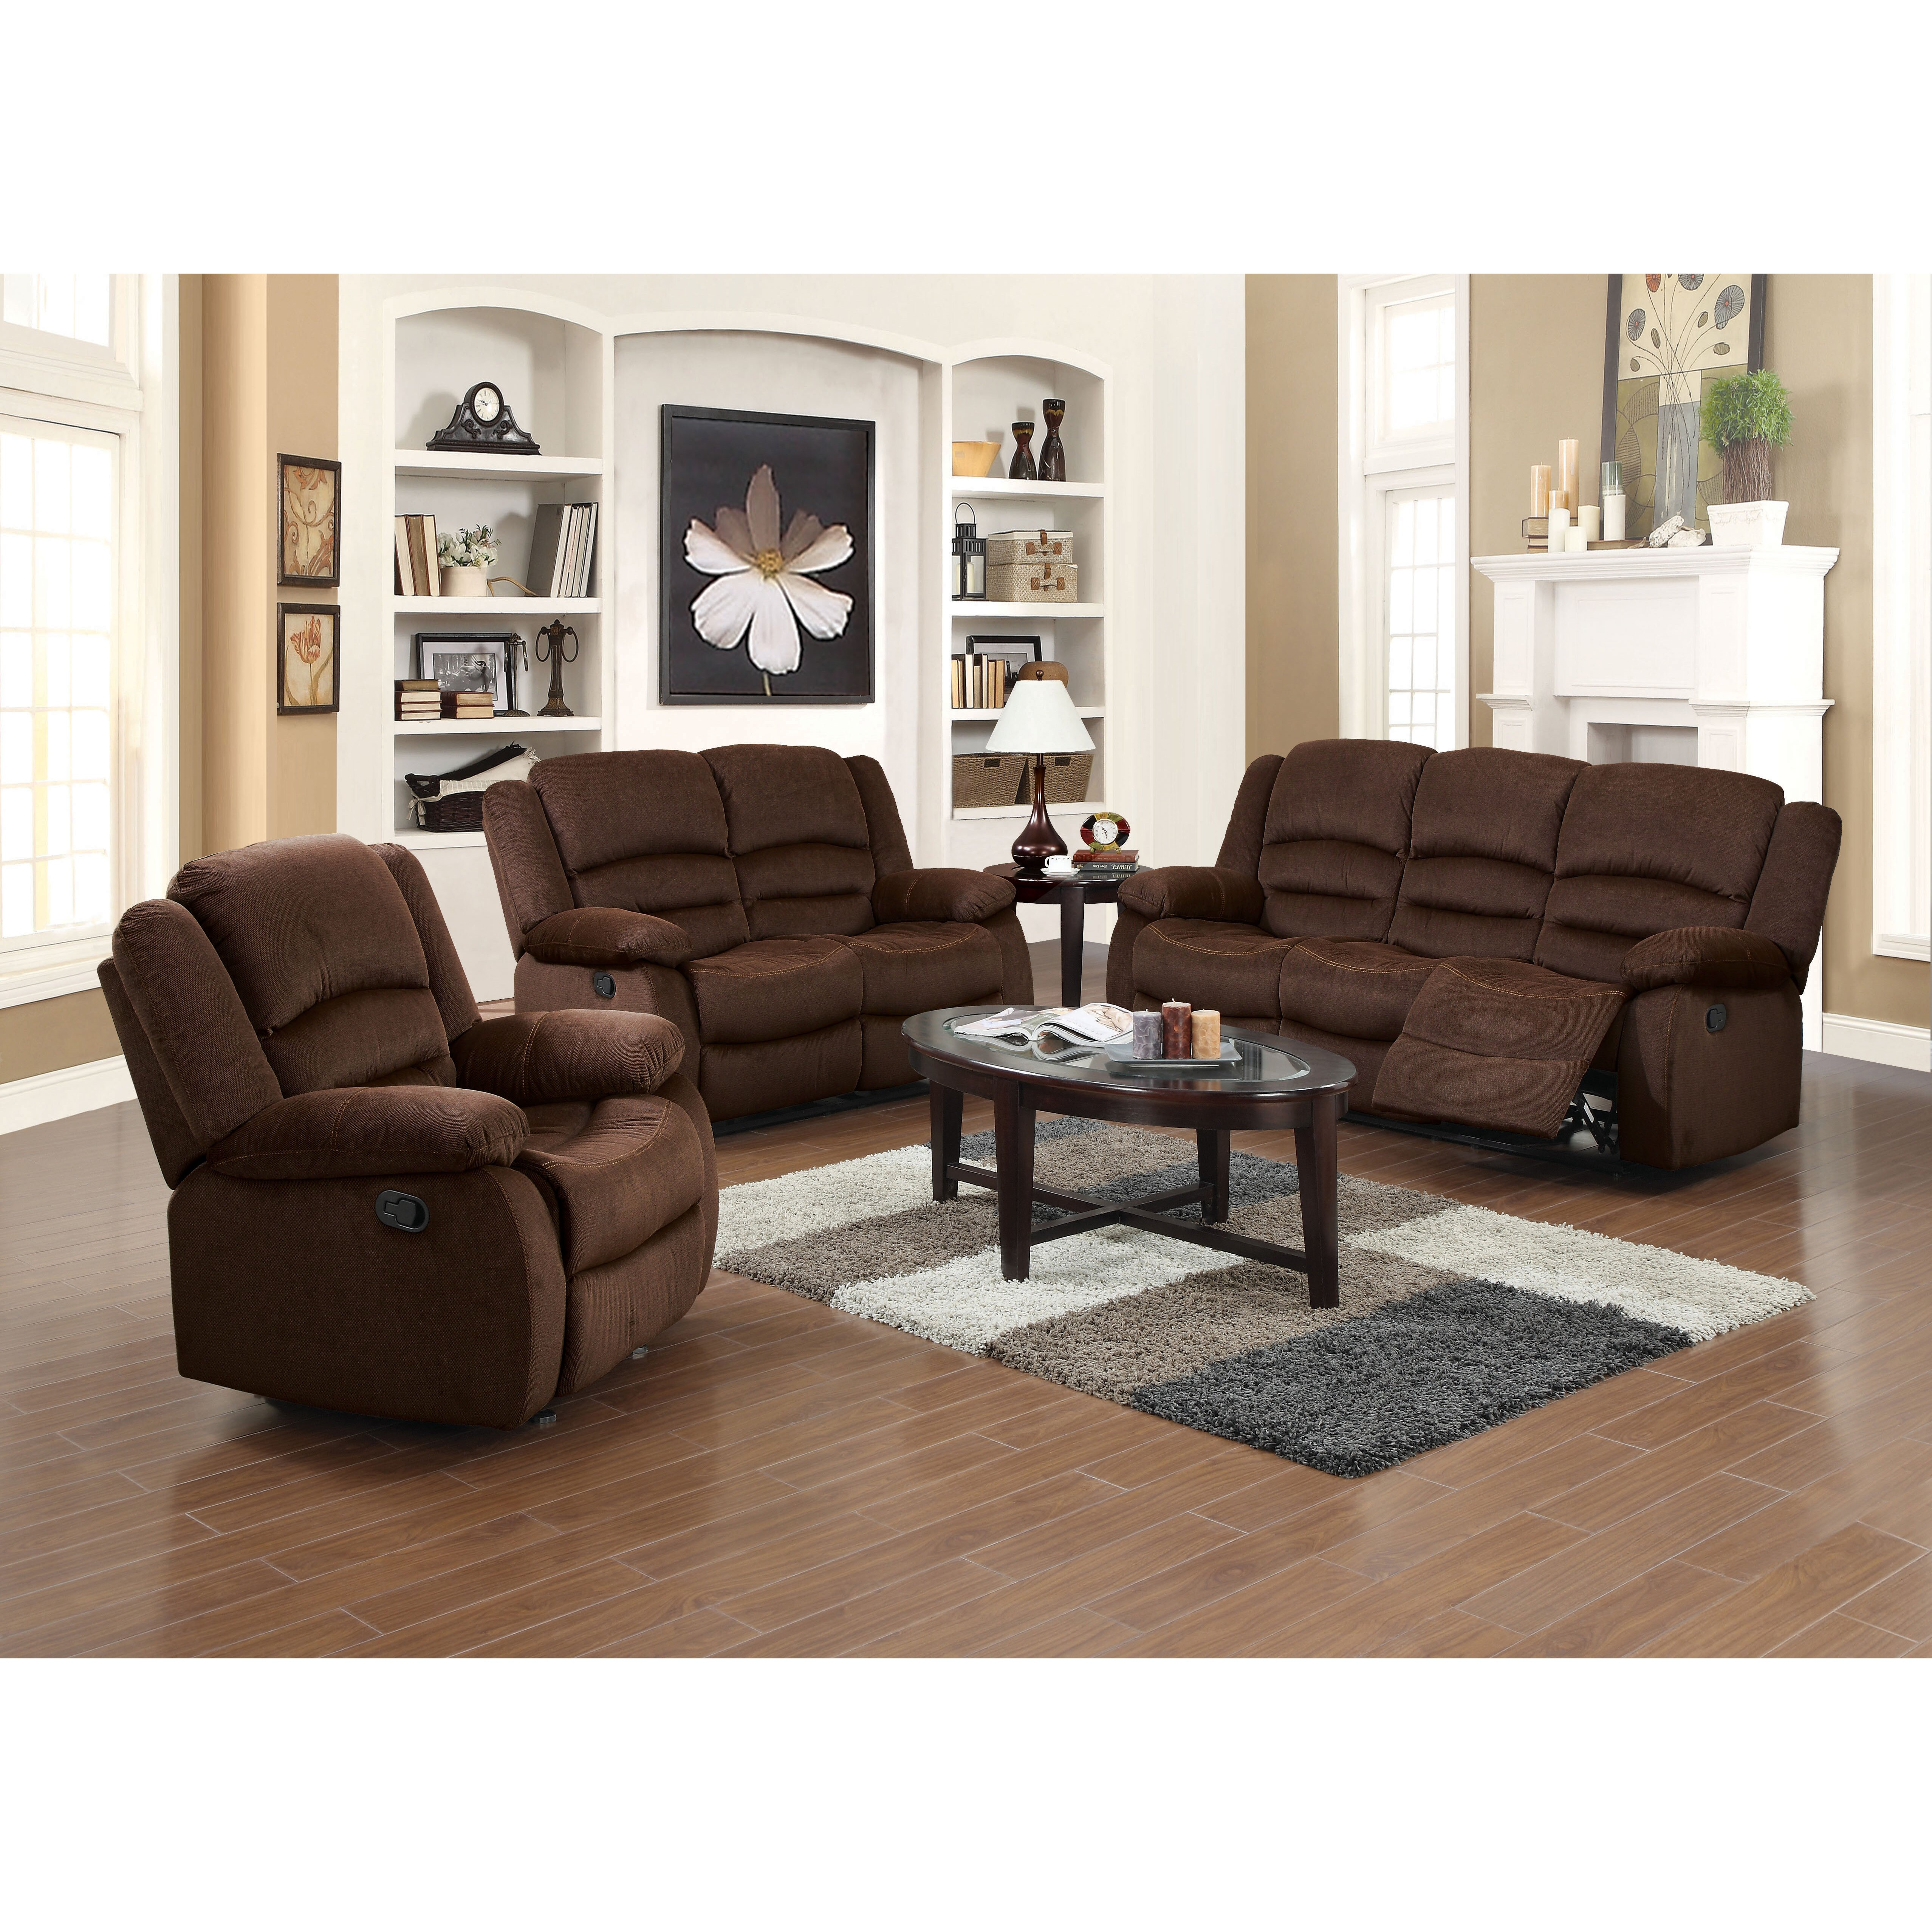 Living Room Collection Furniture Acme Furniture Bailey Living Room Collection Wayfair